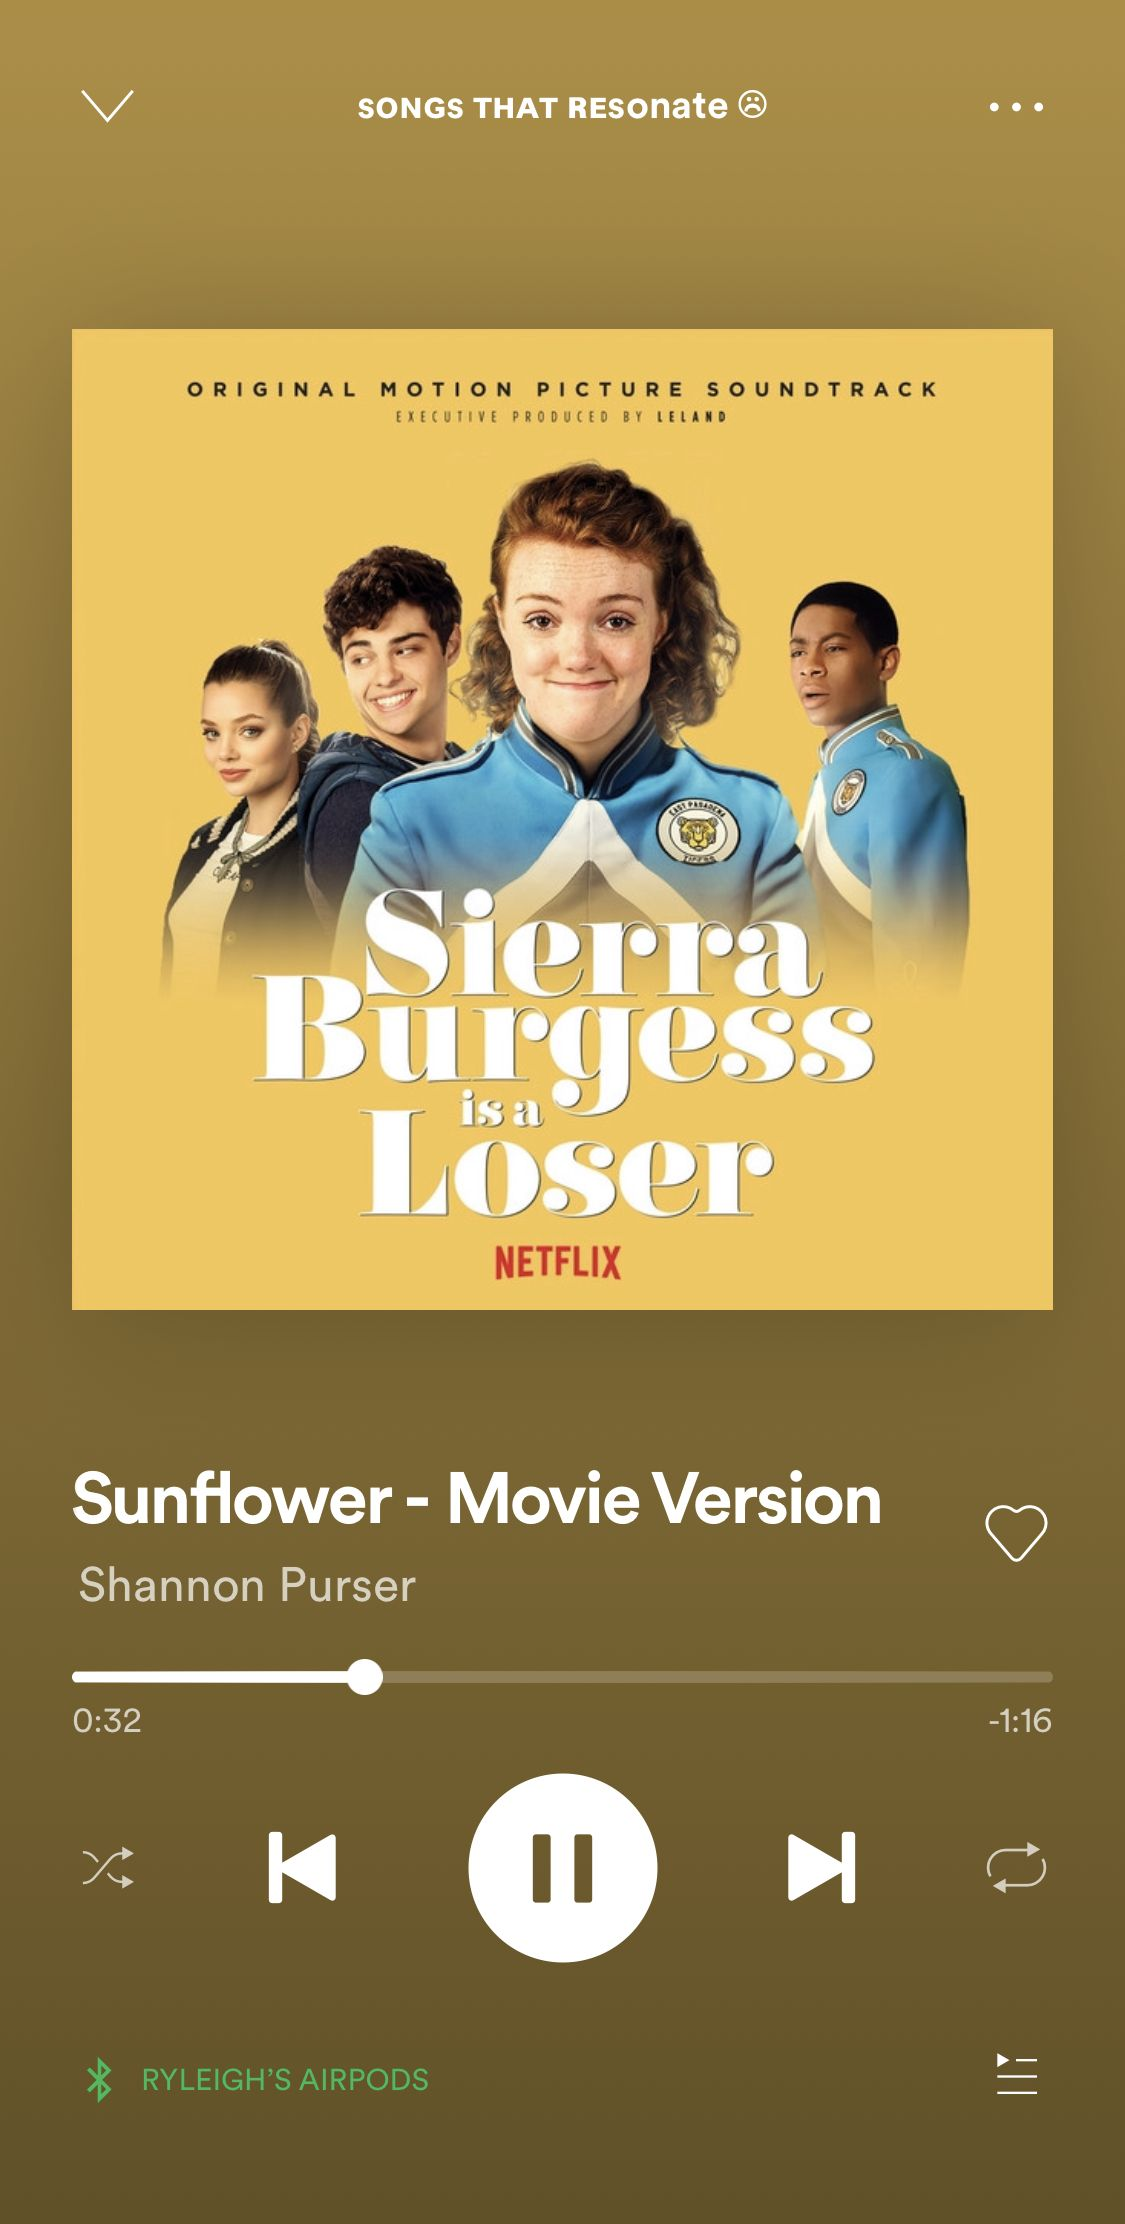 sunflower shannon purser in 2020 Song suggestions